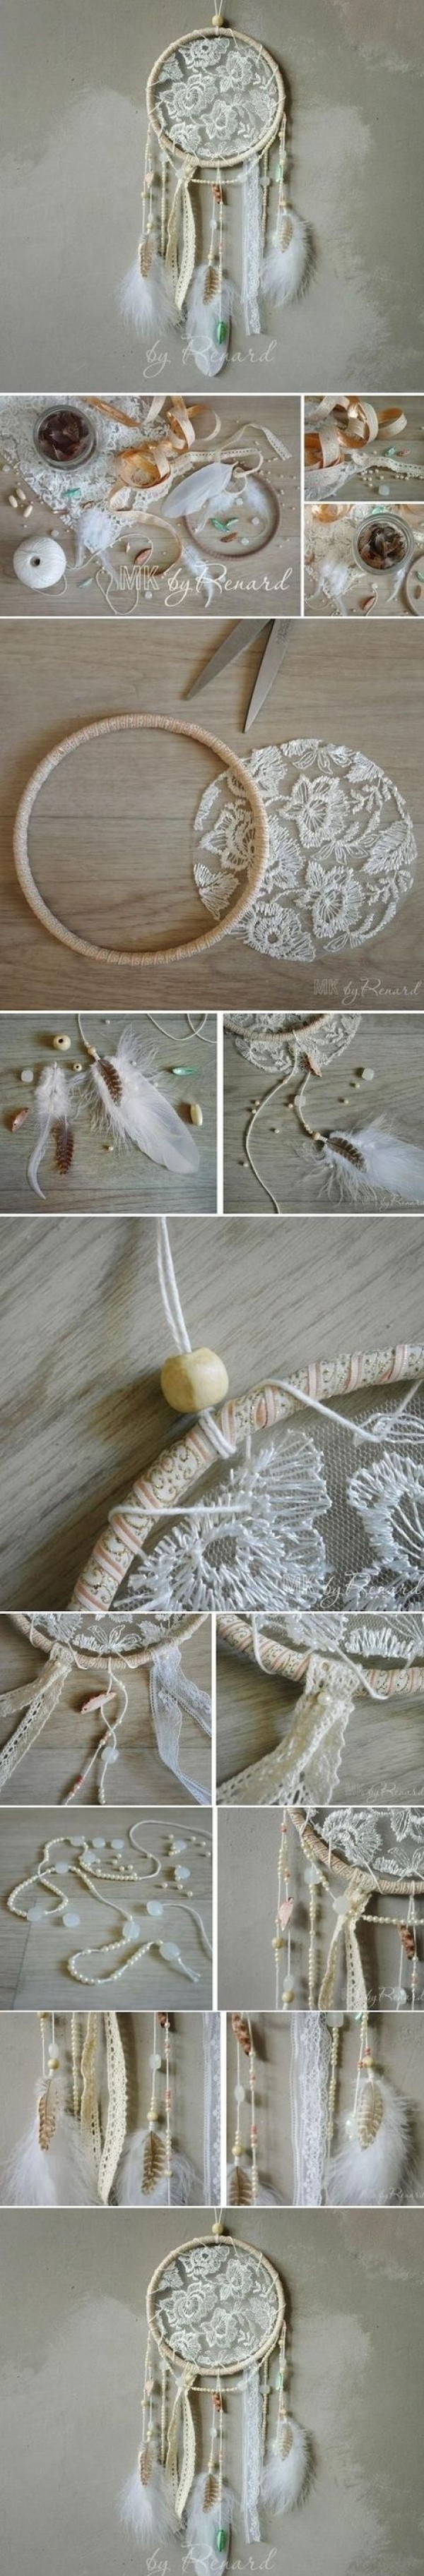 Make your own #DIY dreamcatcher for your bedroom. Looks easy enough! #homedecorideas